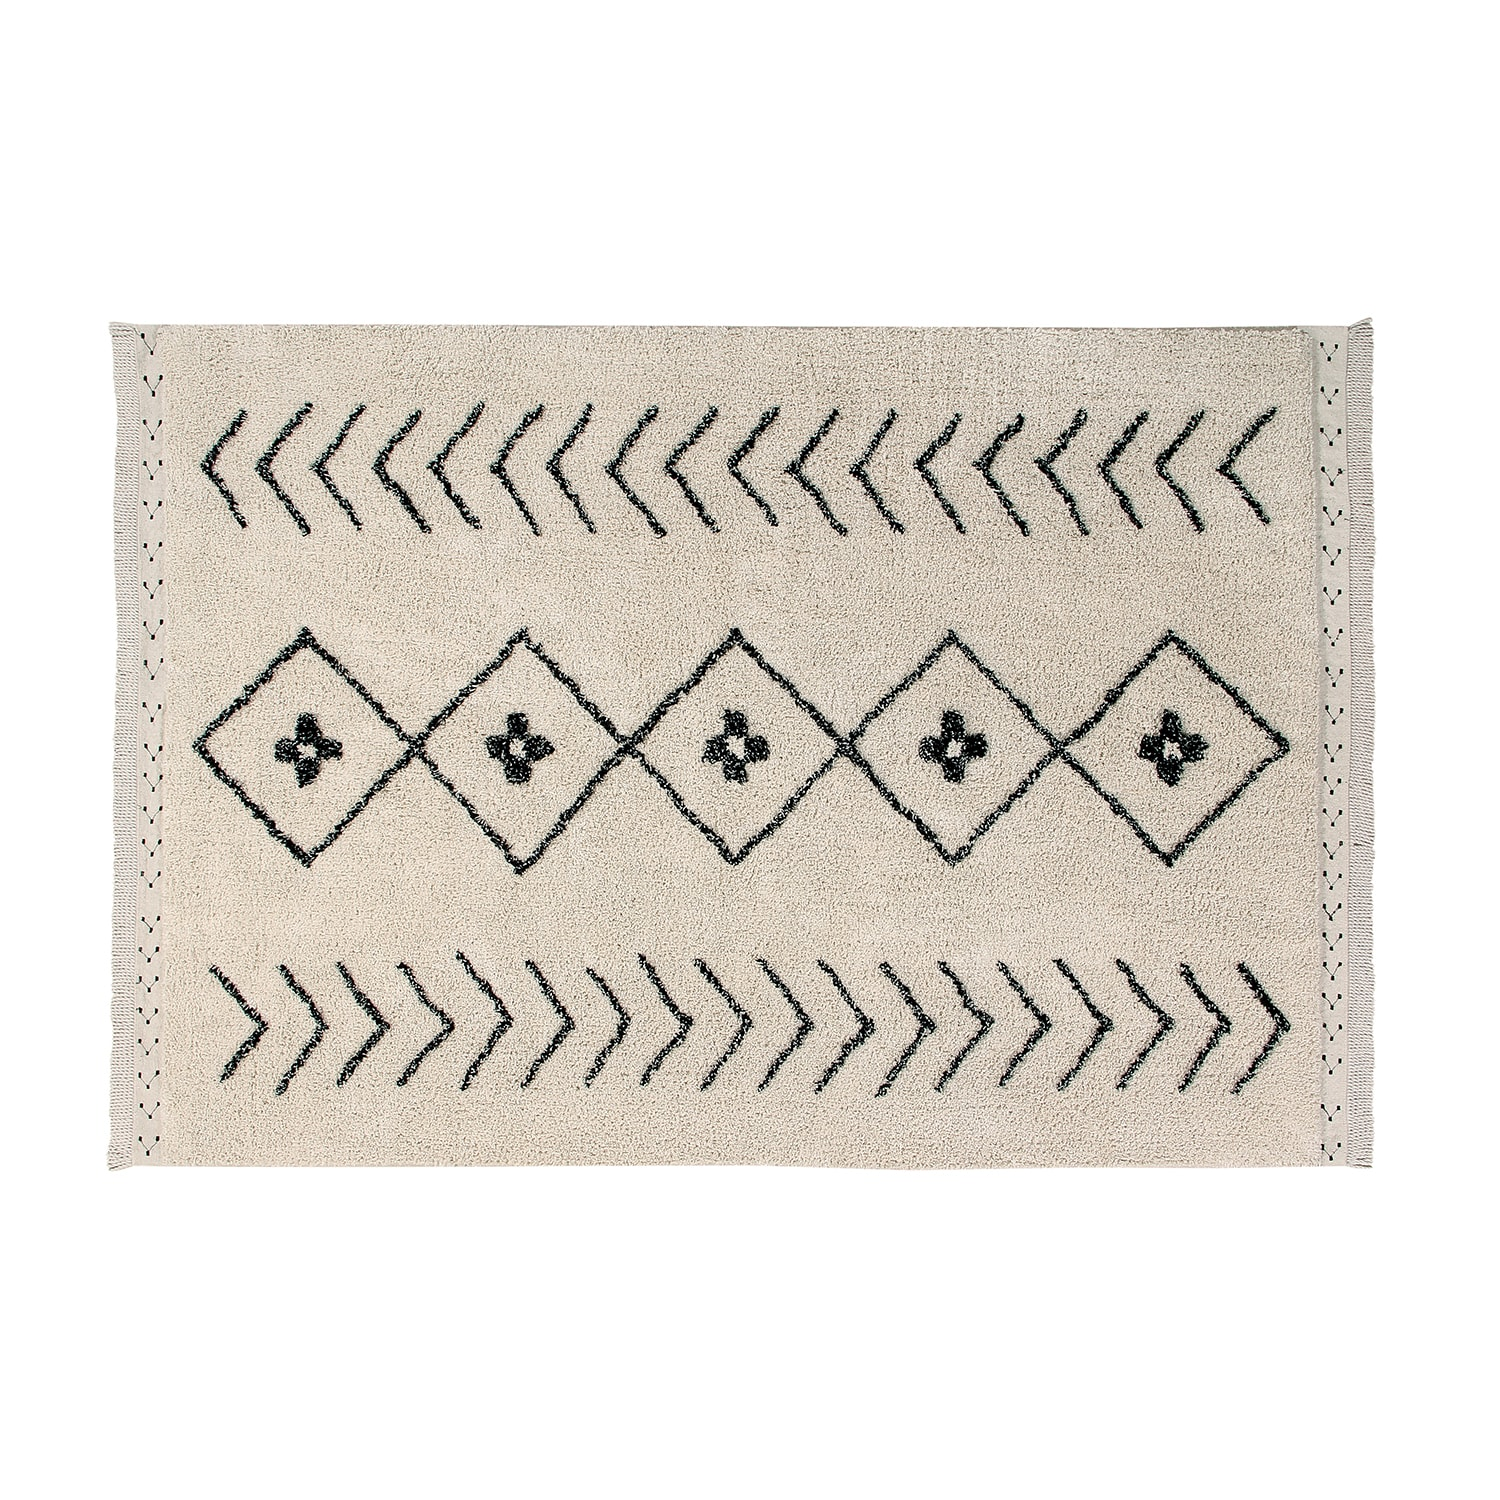 Lorena Canals Large Rhombs Washable Carpet